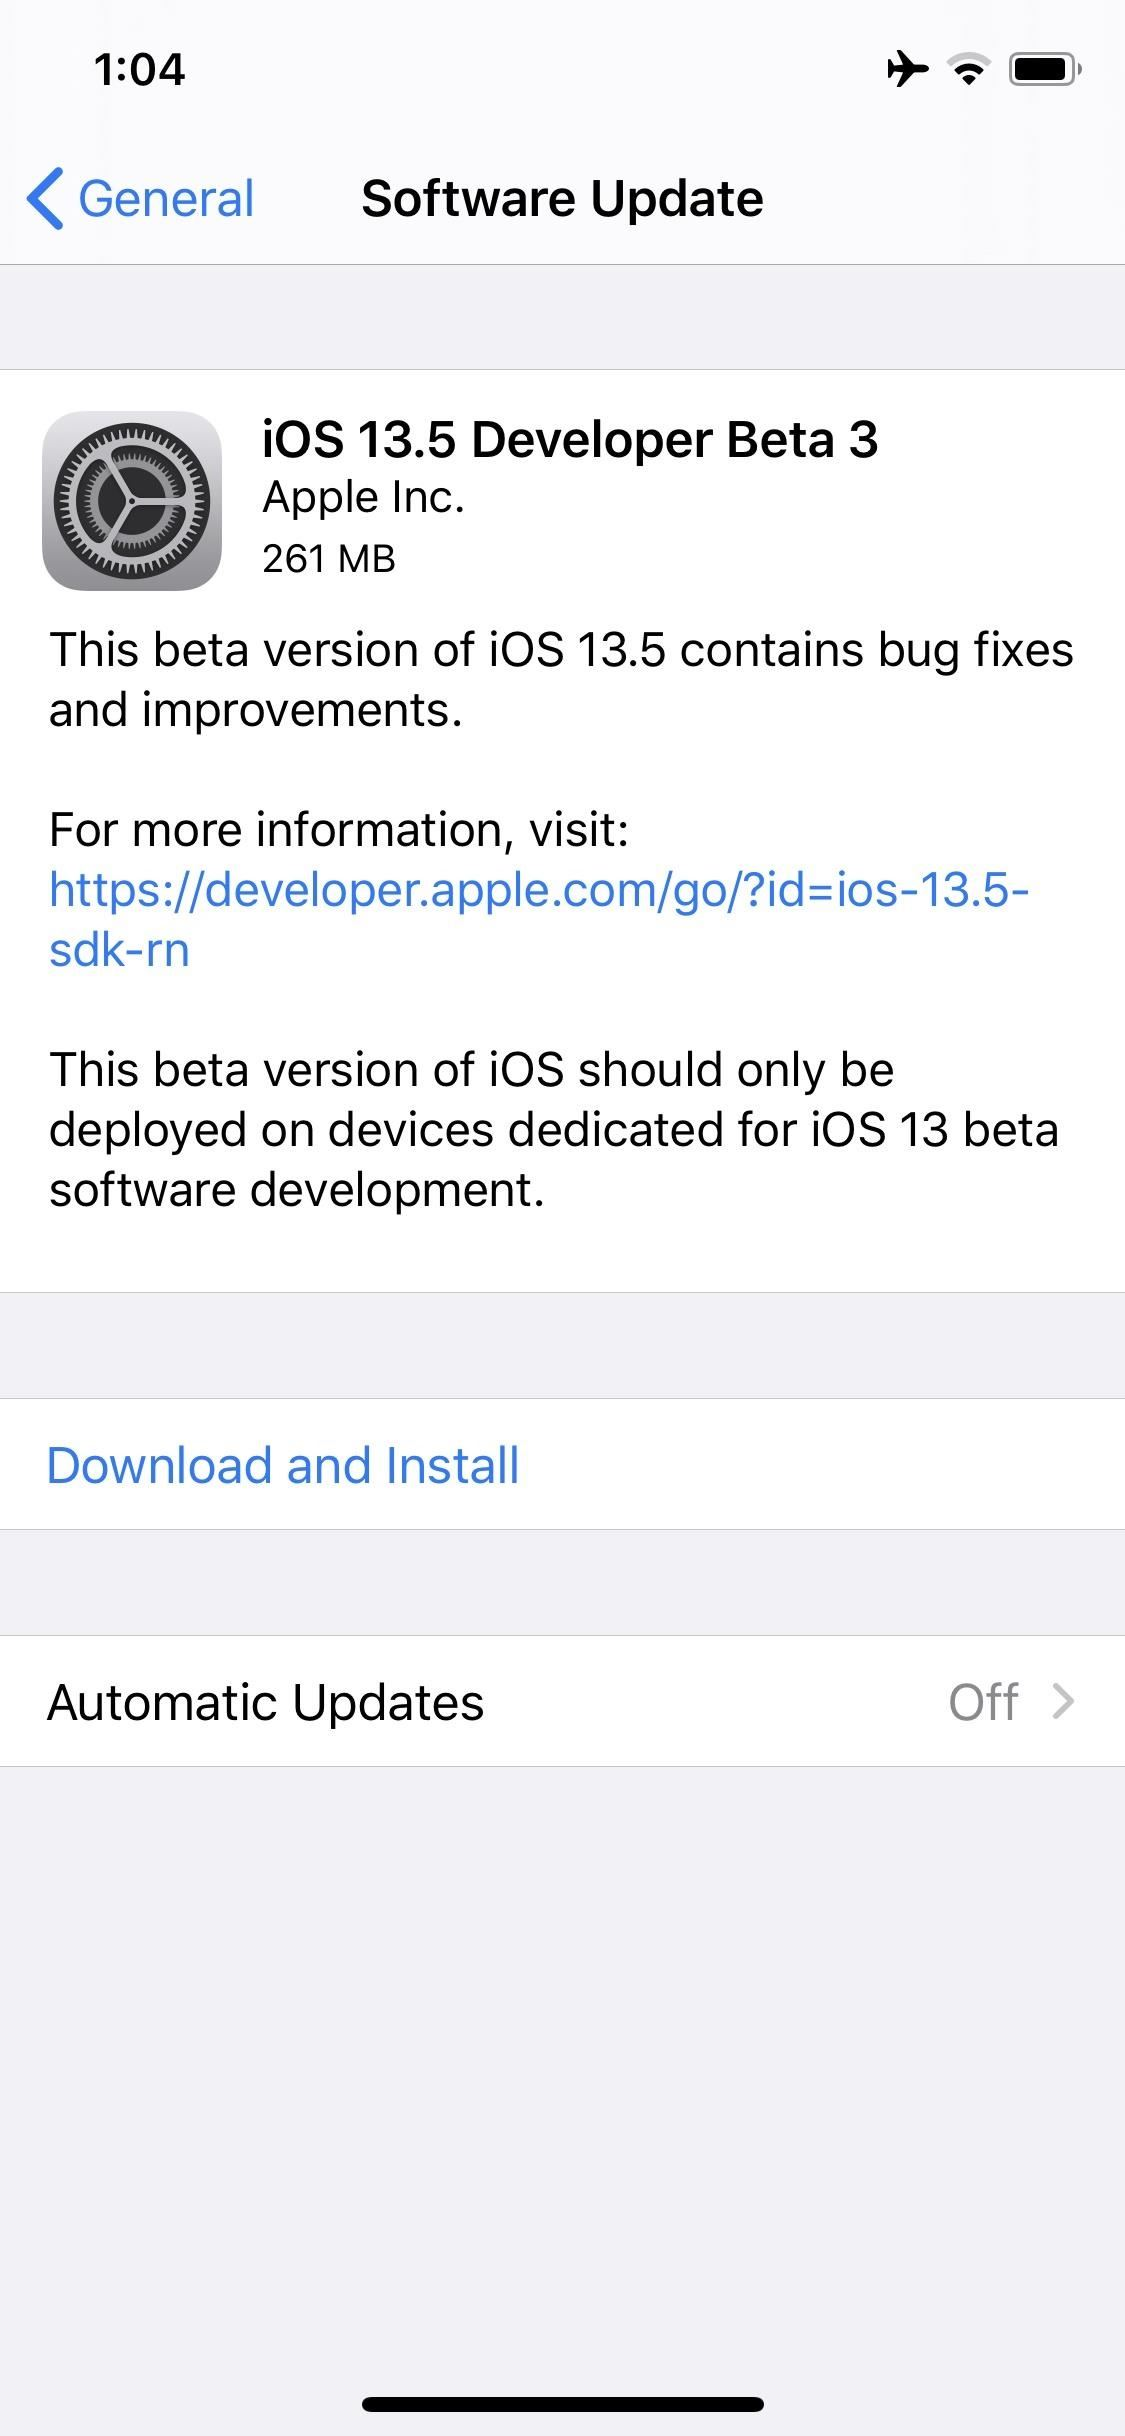 Apple Just Released iOS 13.5 Beta 3 - Yes, 13.5, Not 13.4.5